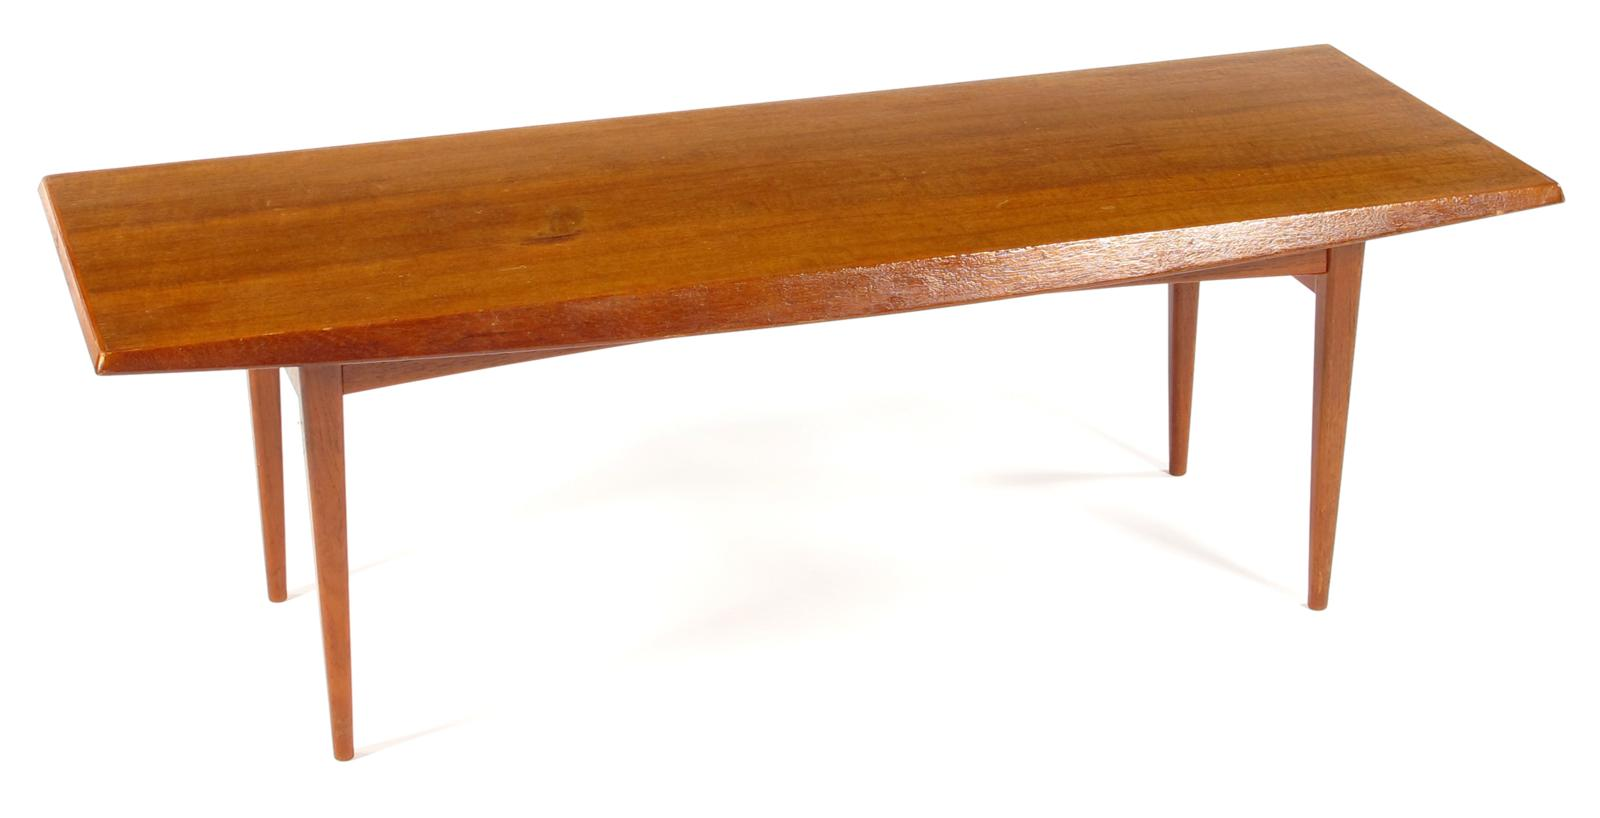 Gordon Russell Coffee Table A Gordon Russell Mahogany Coffee Table Designed By Trevor Chinn